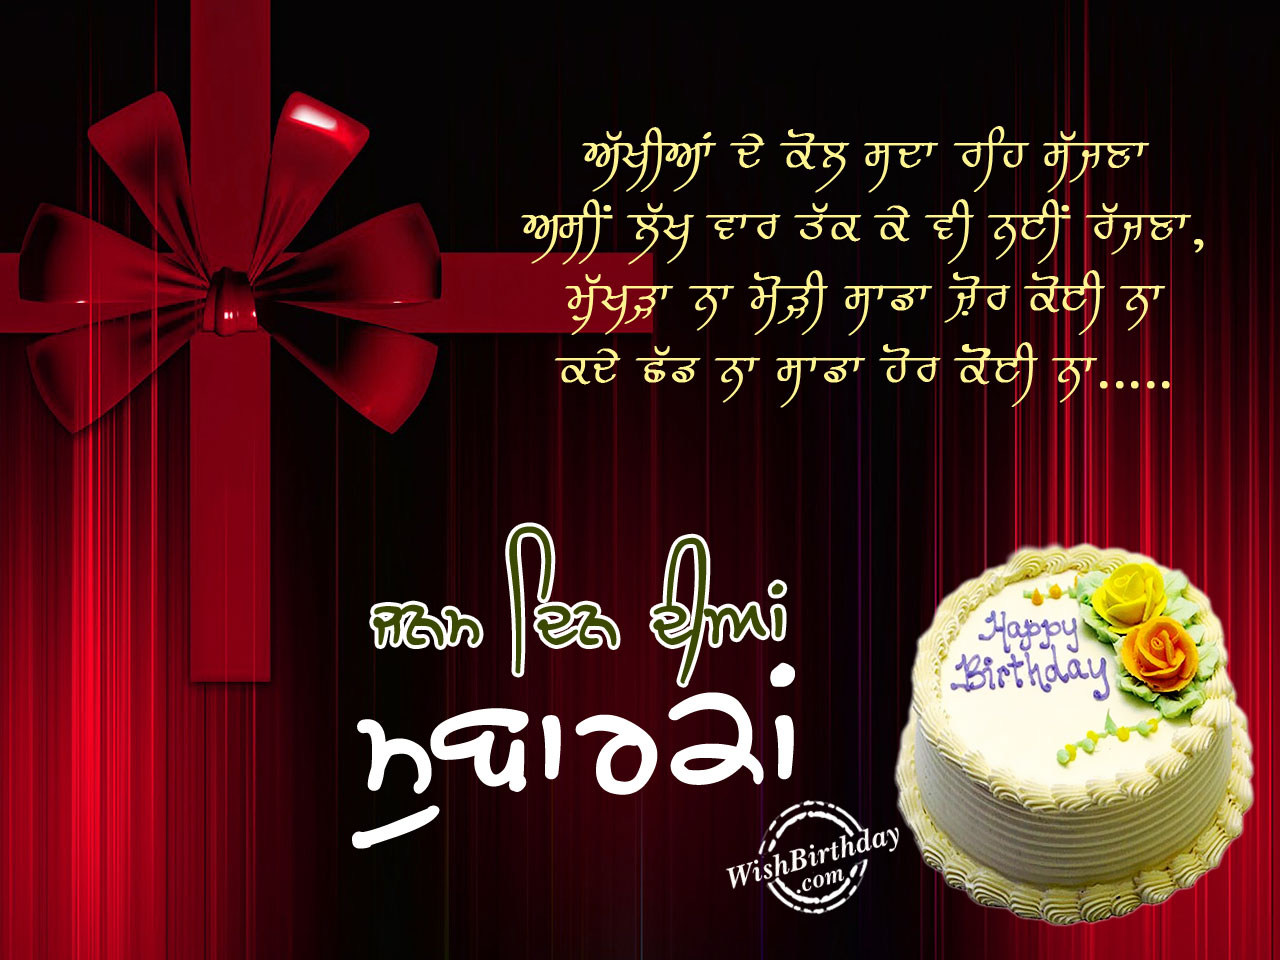 Birthday Wishes In Punjabi - Birthday Images, Pictures